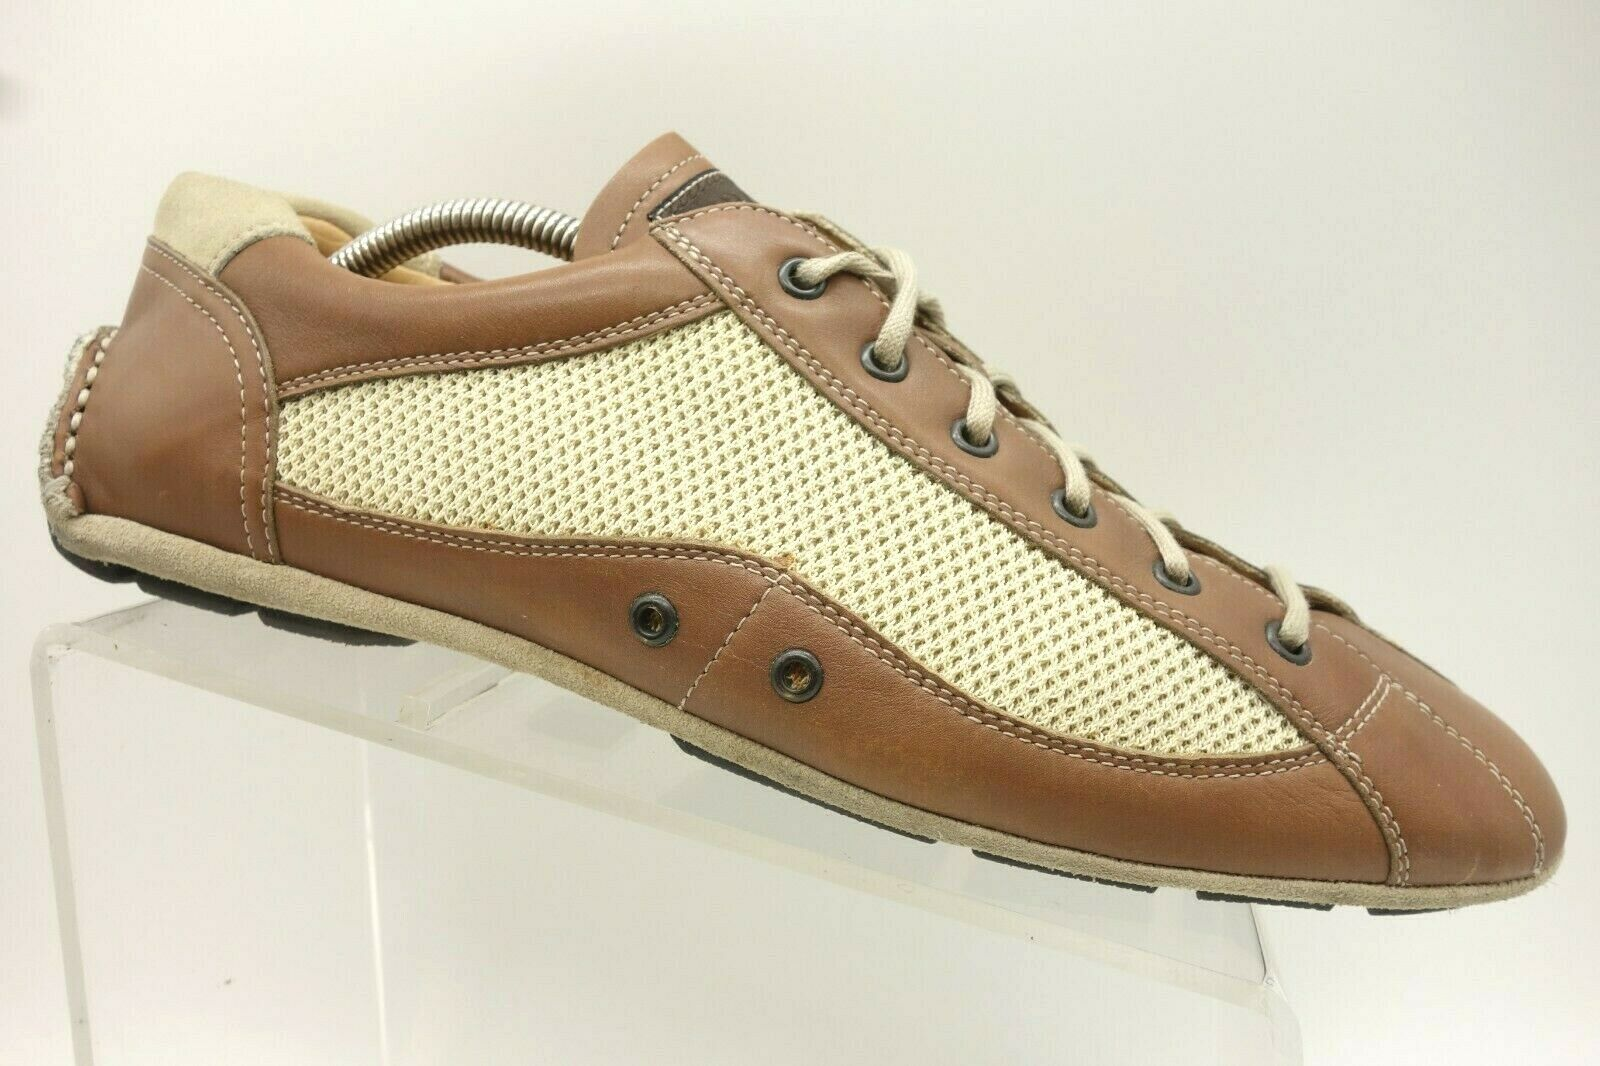 Prada Brown Leather Lace Up Driving Fashion Oxfords shoes Mens 10.5 UK   US 11.5